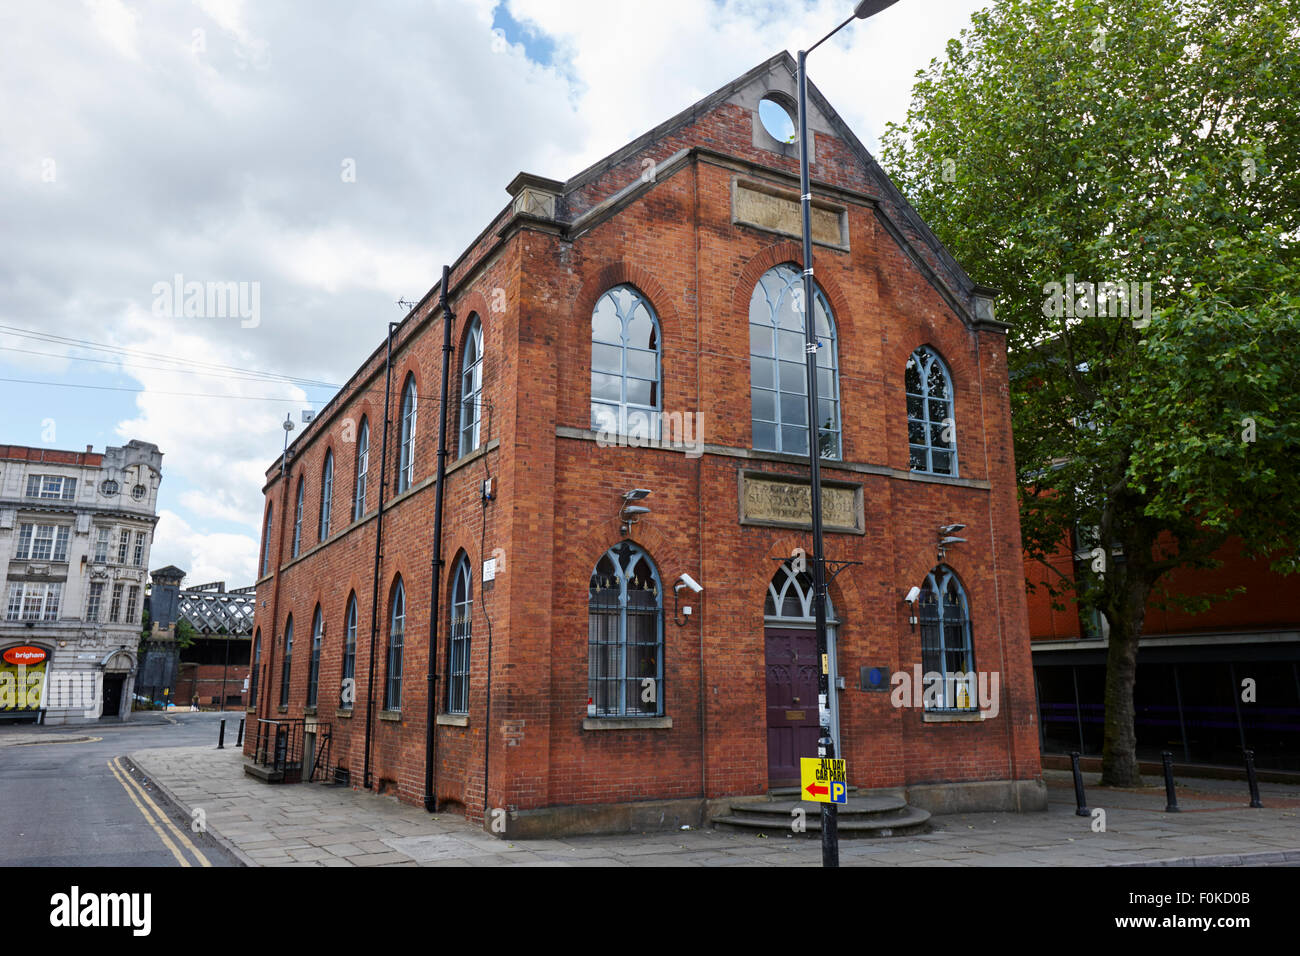 st matthews old sunday school building castlefield Manchester England UK - Stock Image